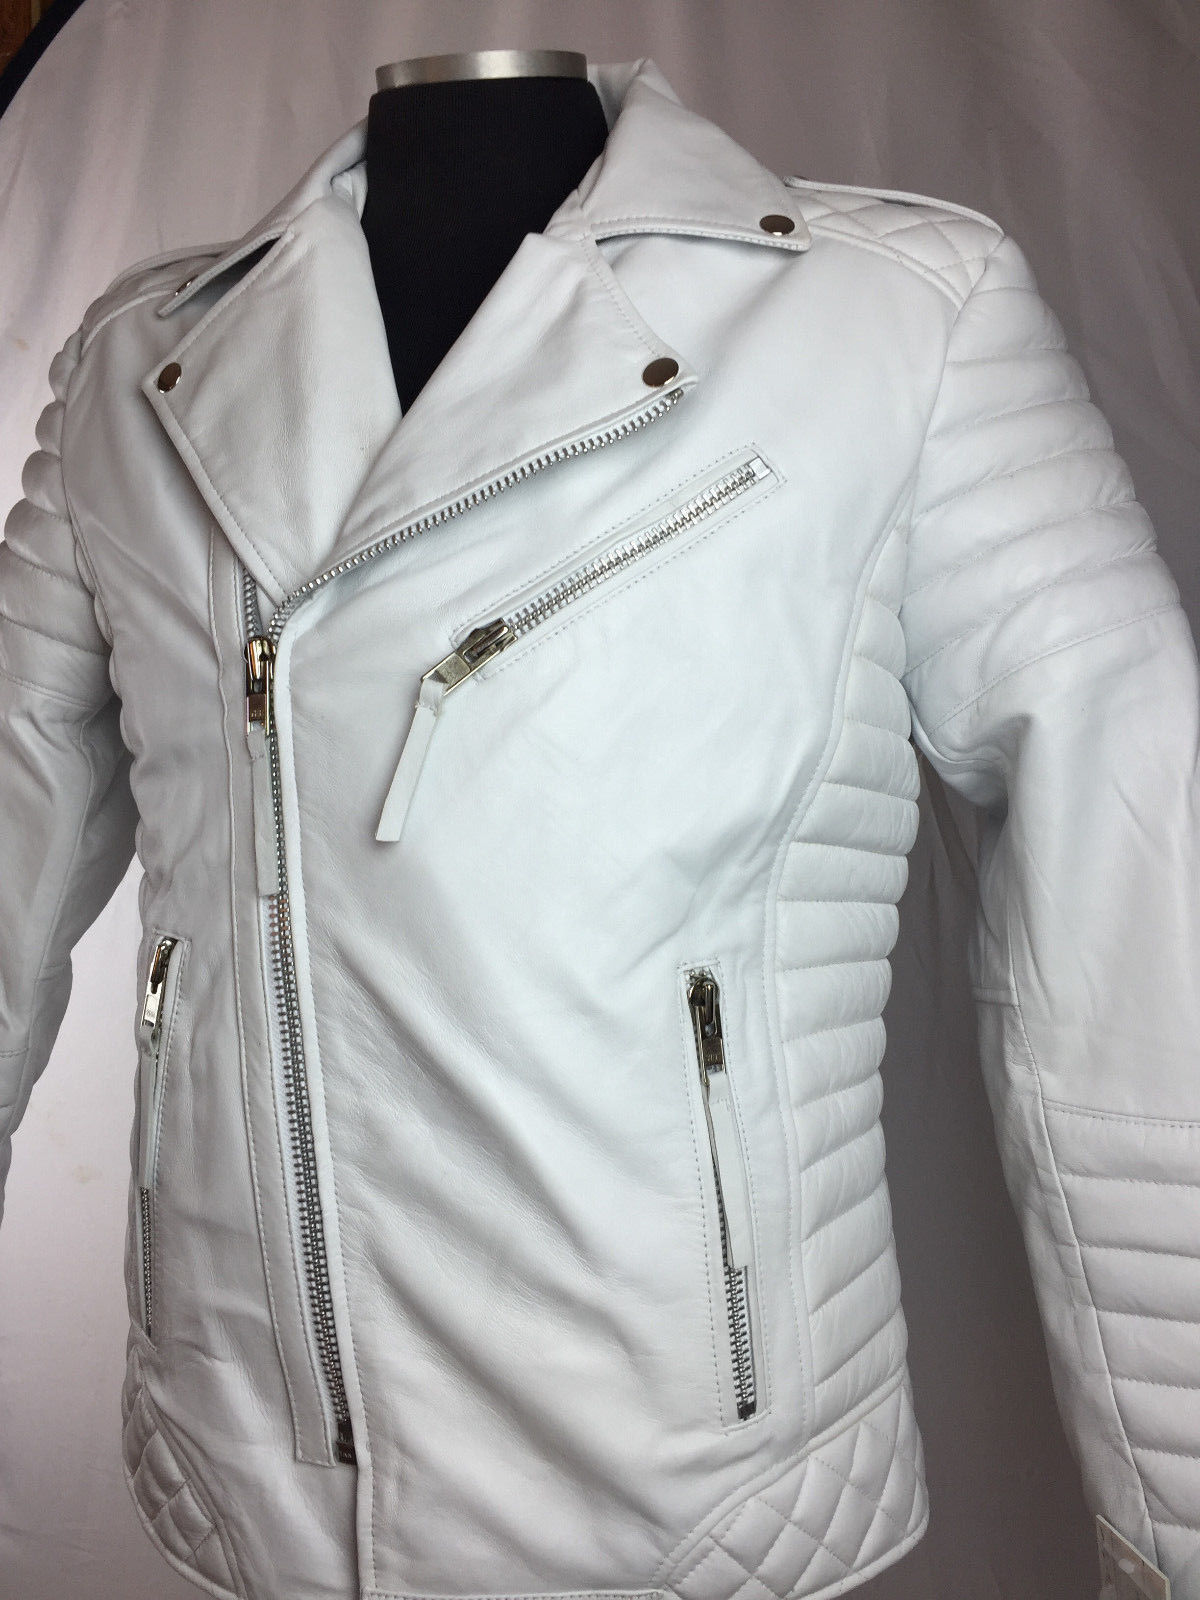 4e05b0680 NEW HANDMADE MENS GENUINE LAMBSKIN LEATHER BIKER JACKET MOTORCYCLE STYLE  WHITE Color jacket